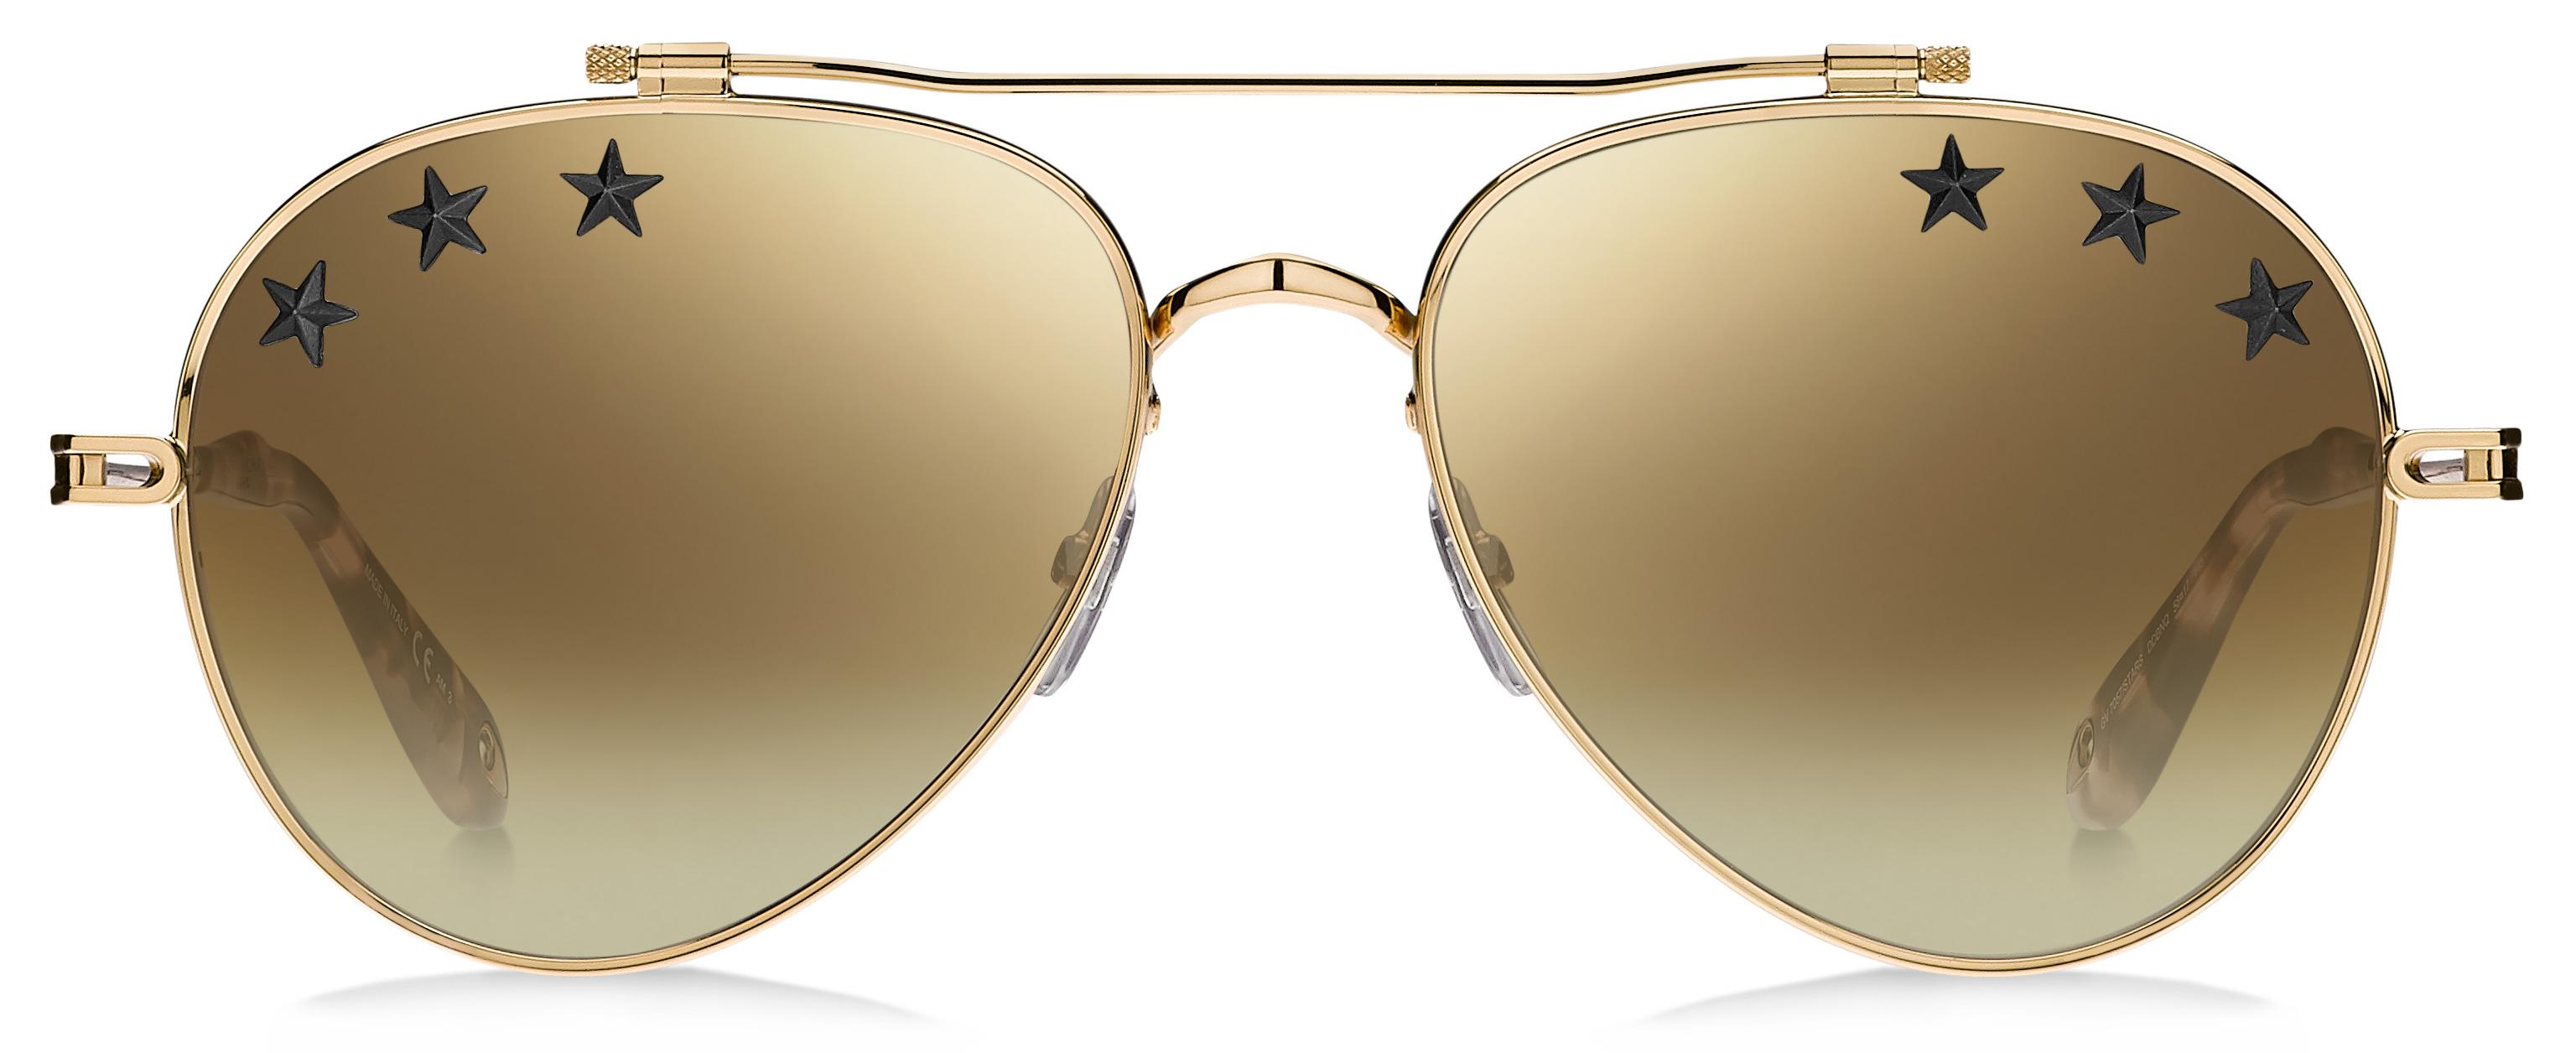 48224ab5d173 Lyst - Givenchy Gv7057 Stars Aviator Sunglasses in Metallic